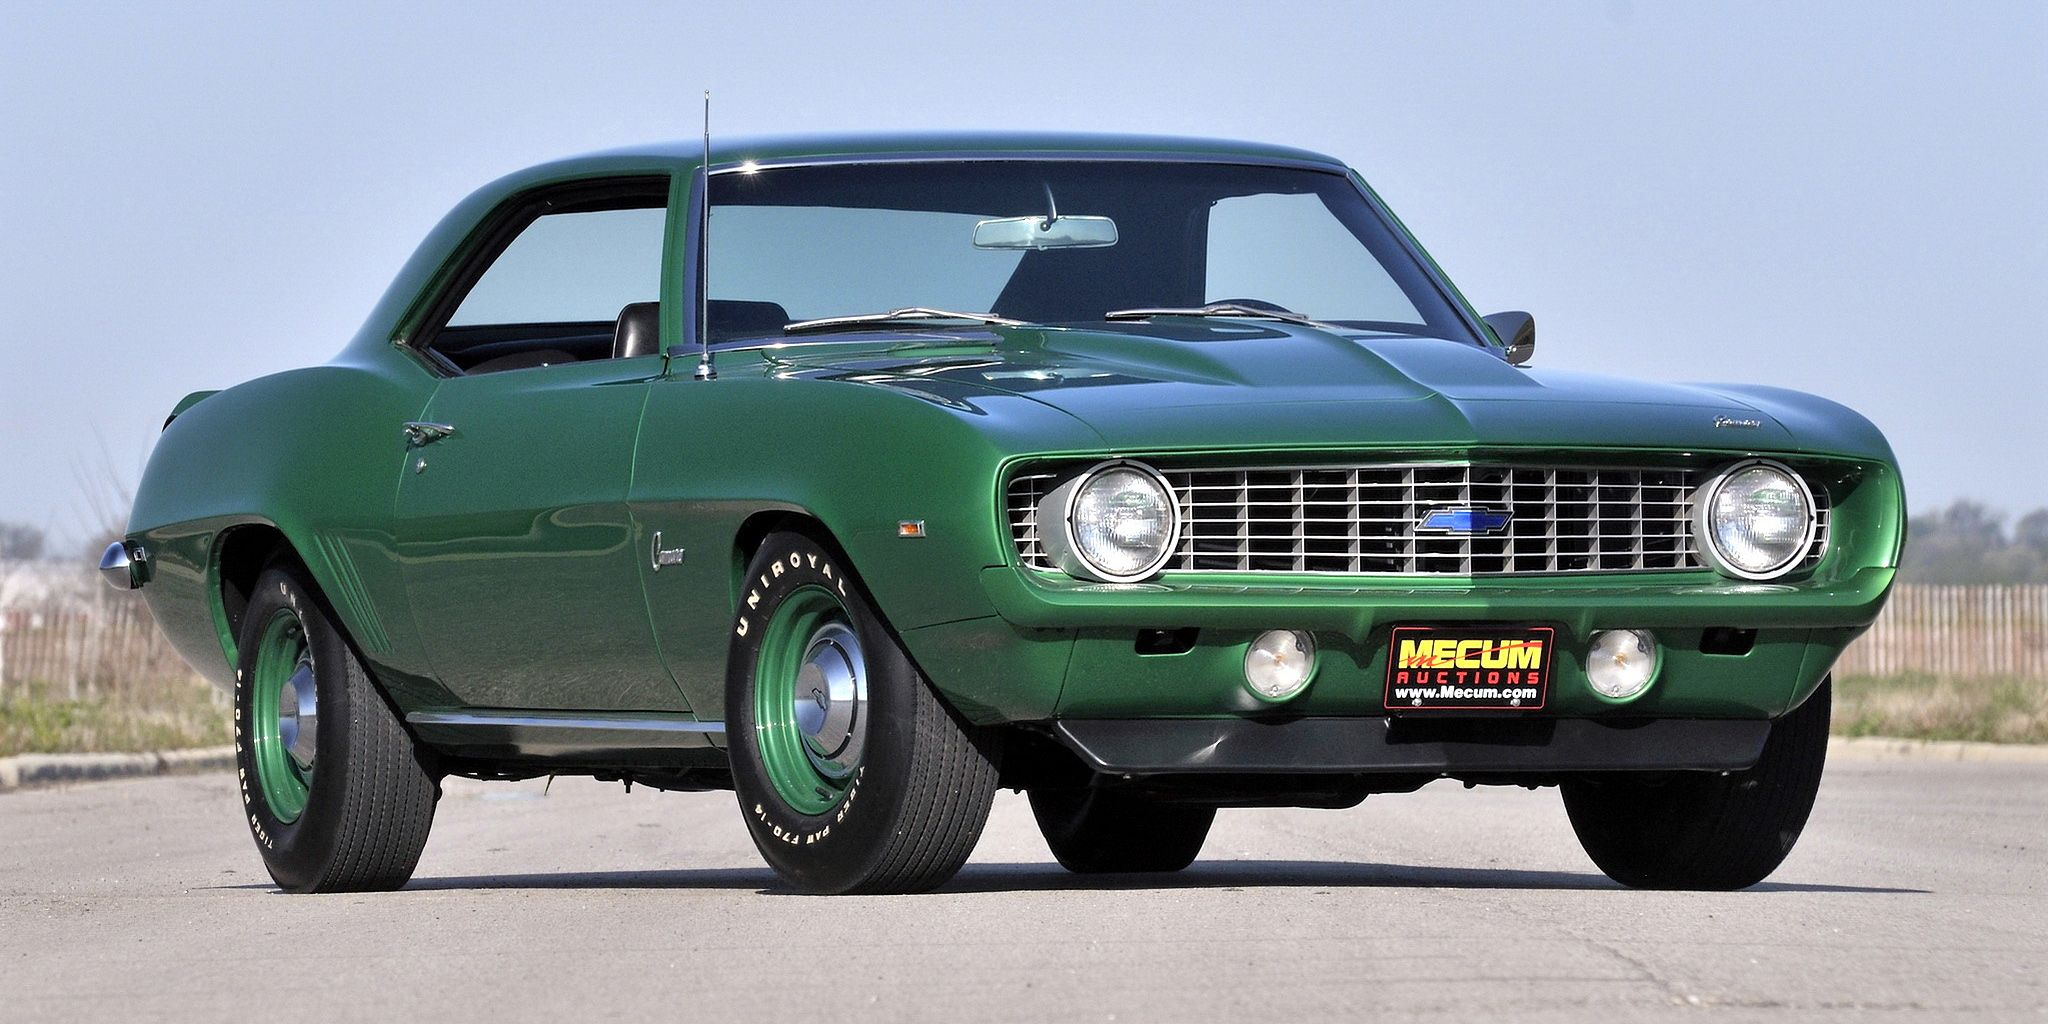 Built in limited numbers, these muscle cars were made for one reason ...